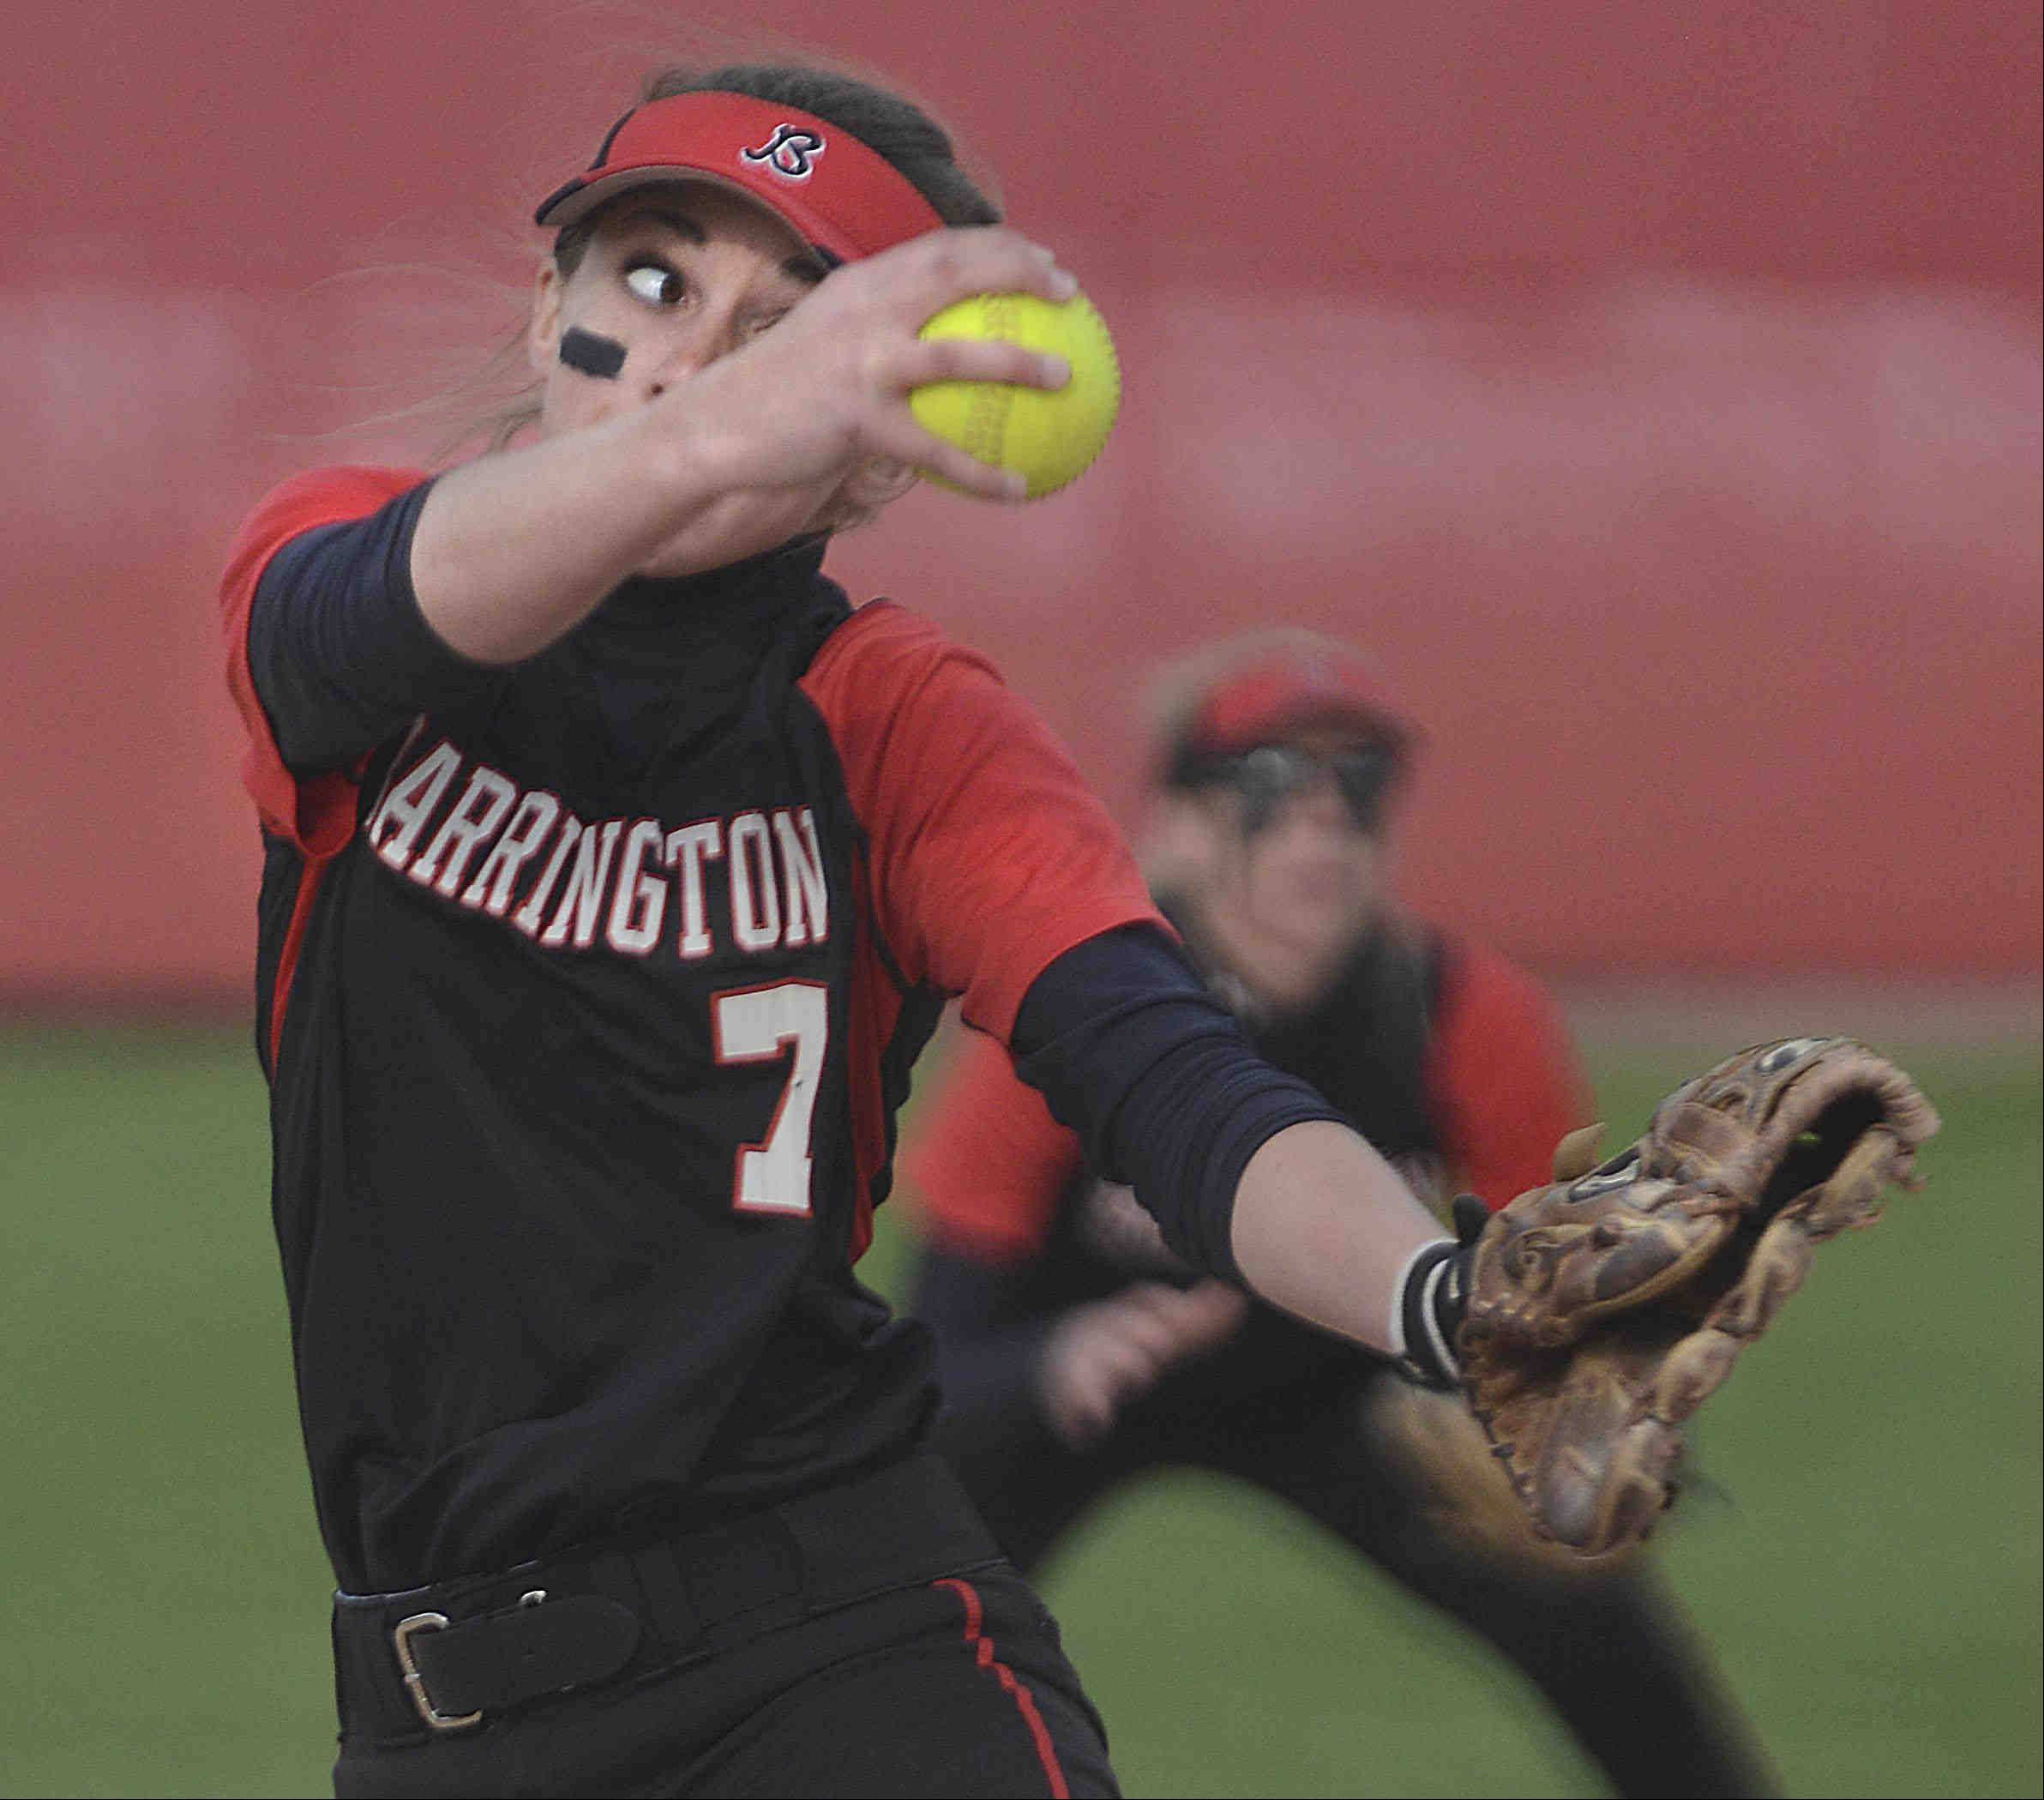 Barrington pitcher Keenan Dolezal delivers against Fremd Monday at the Field of Dreams in Barrington.